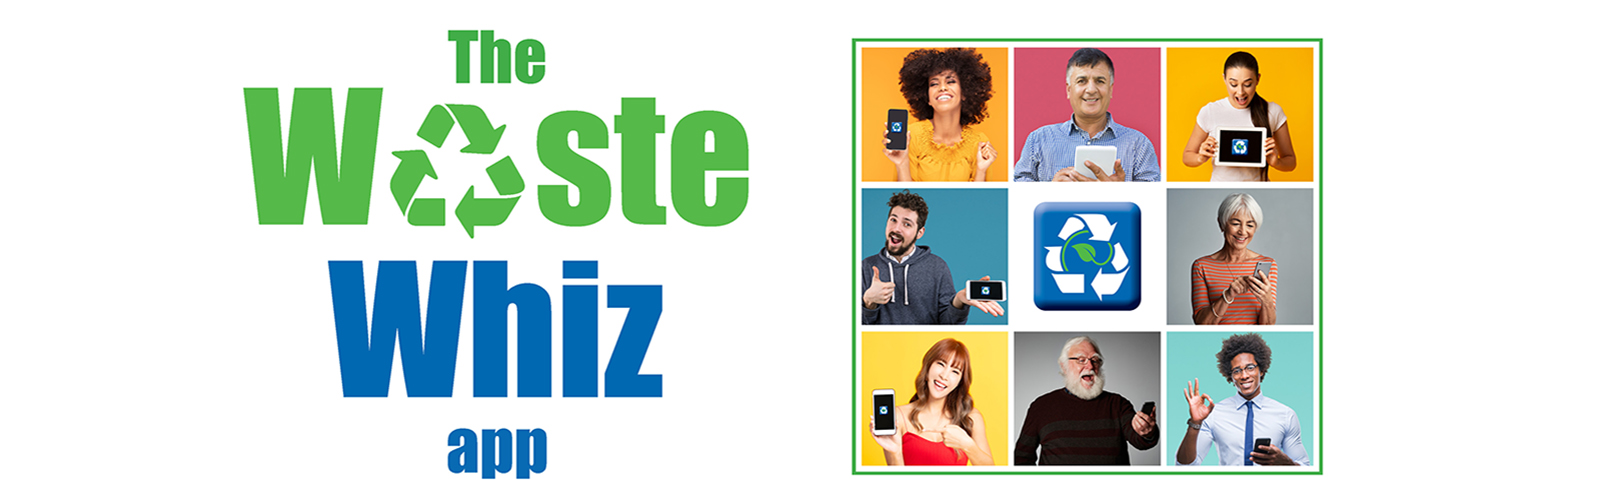 Group of people using the Waste Whiz app